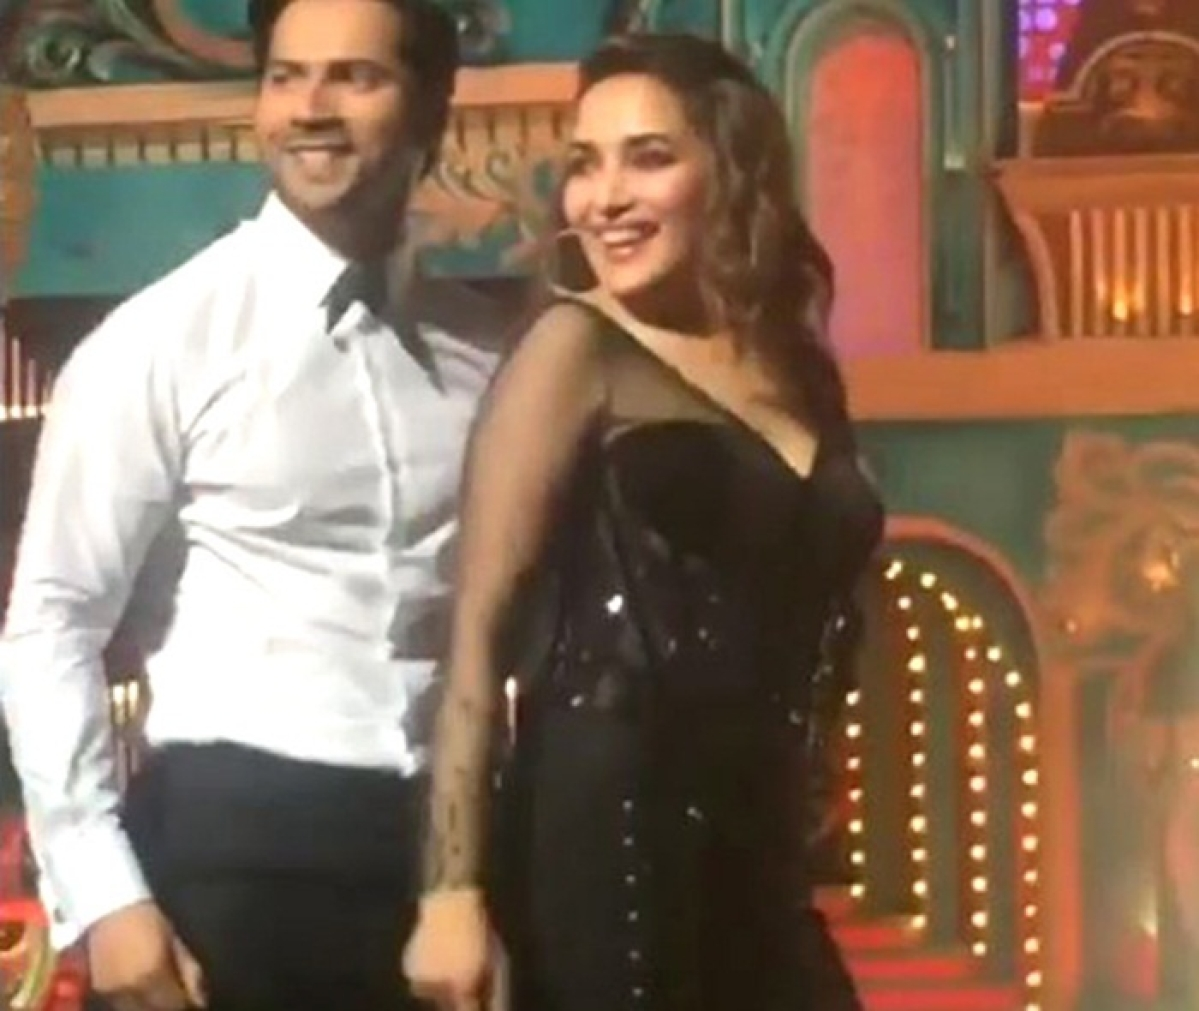 Watch: Varun Dhawan and Madhuri Dixit set the stage ablaze at Star Screen Awards